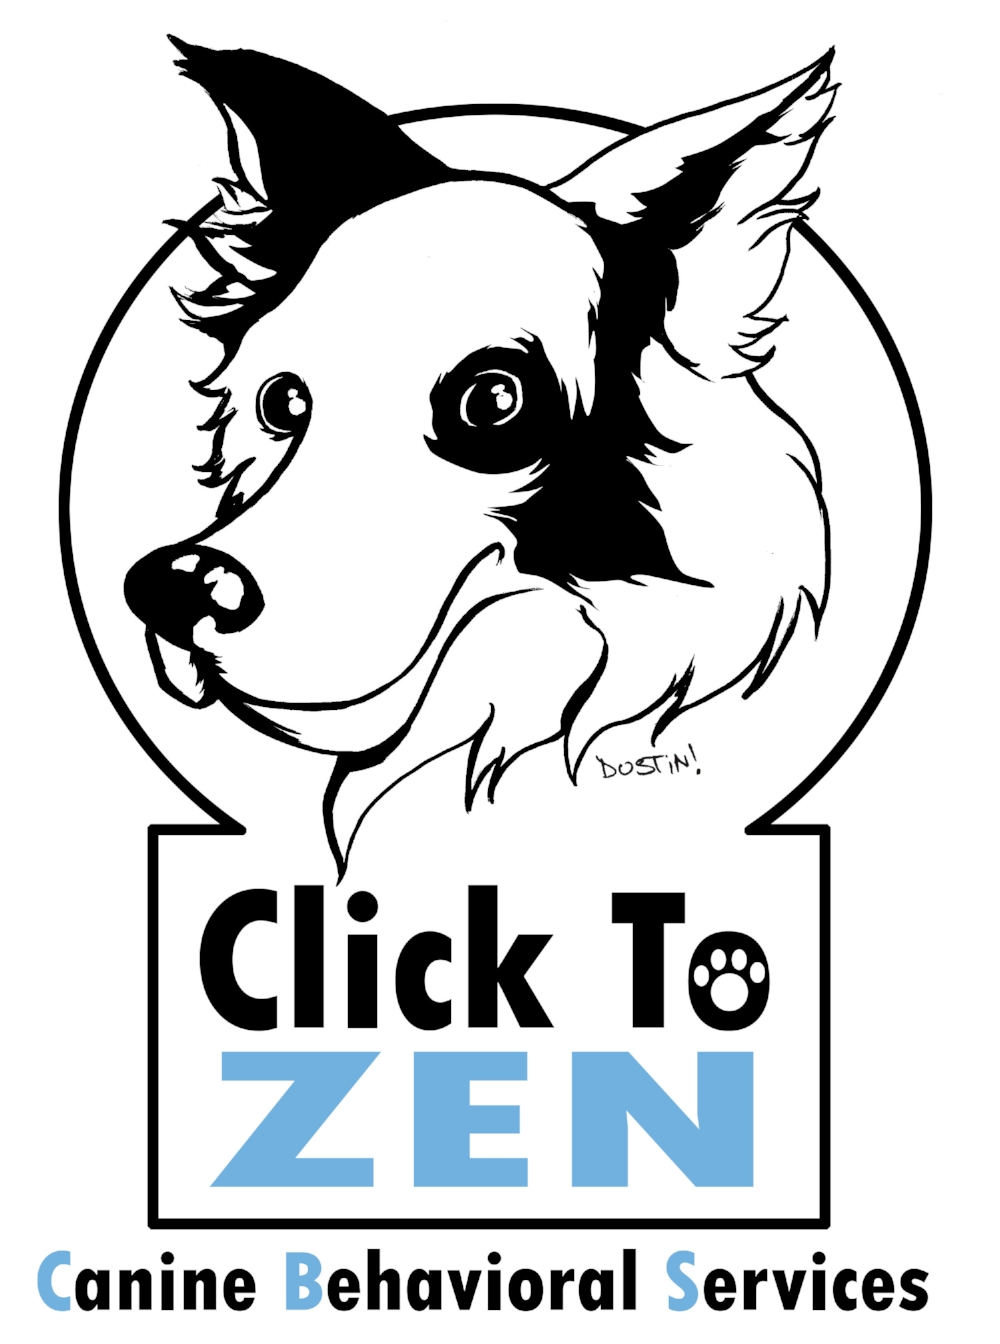 Welcome to Click To Zen - Canine Behavioral ServicesProfessional and Certified Trainers